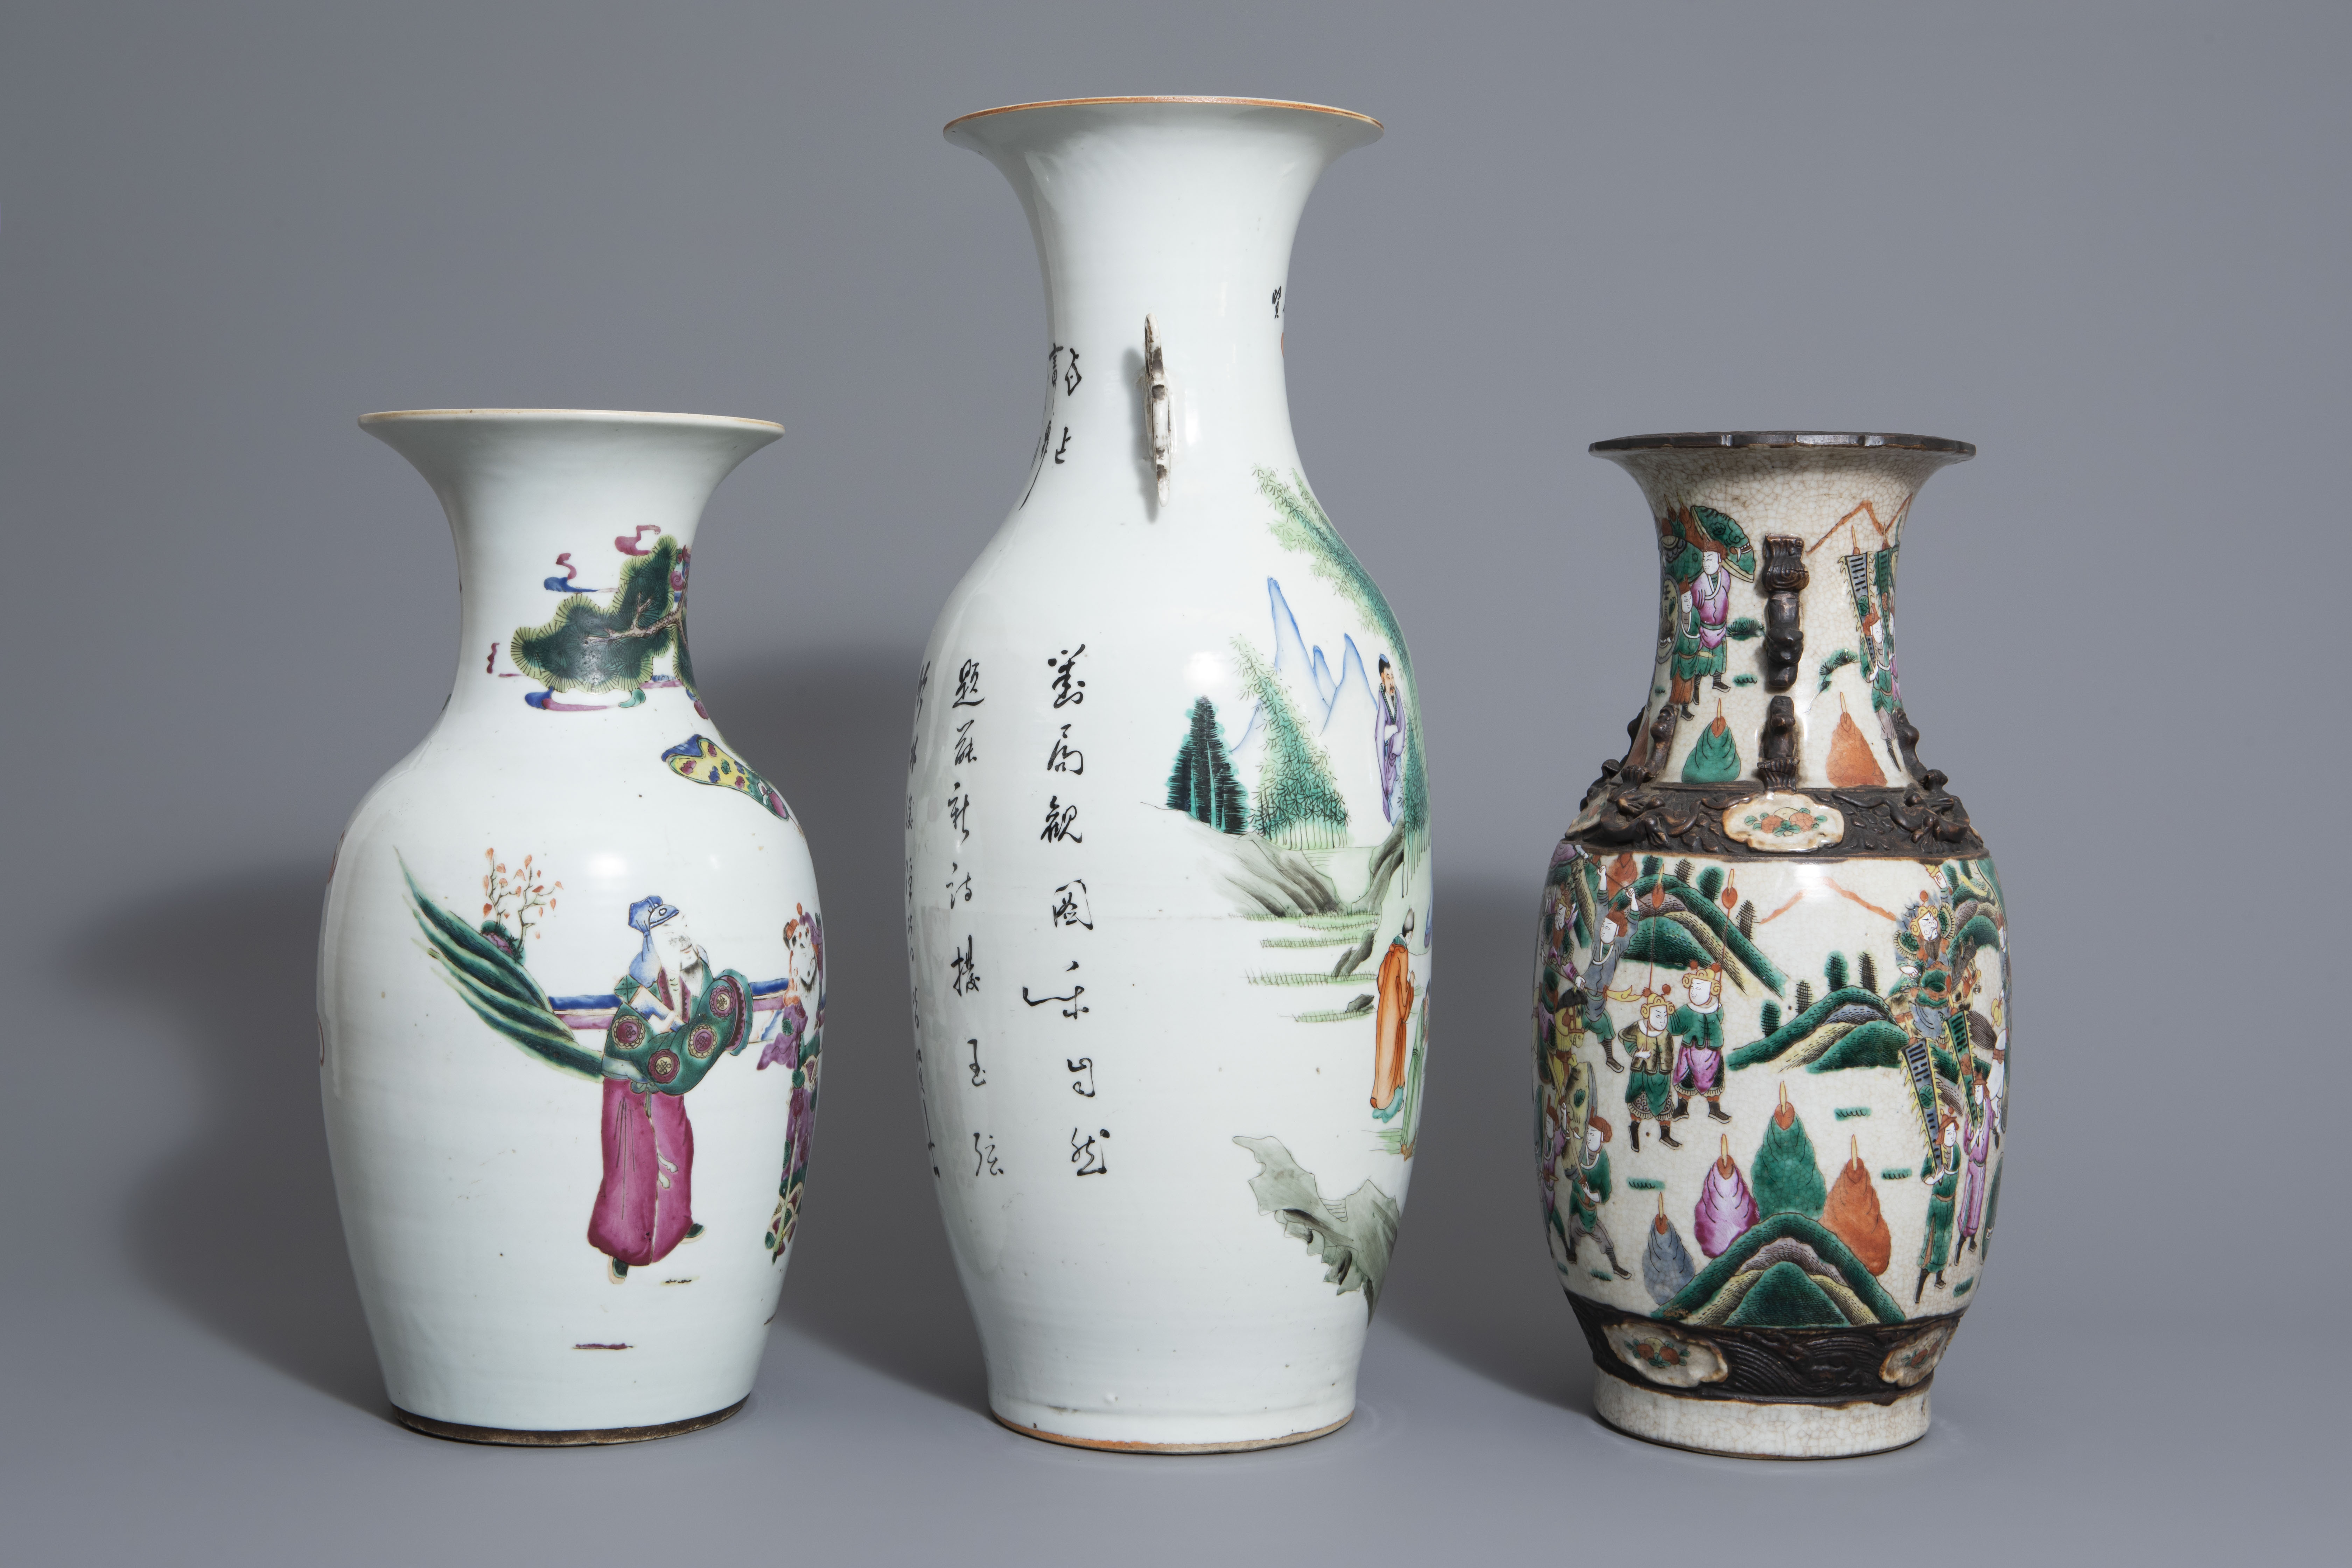 Three Chinese famille rose and Nanking crackle glazed vases, 19th C. - Image 3 of 7